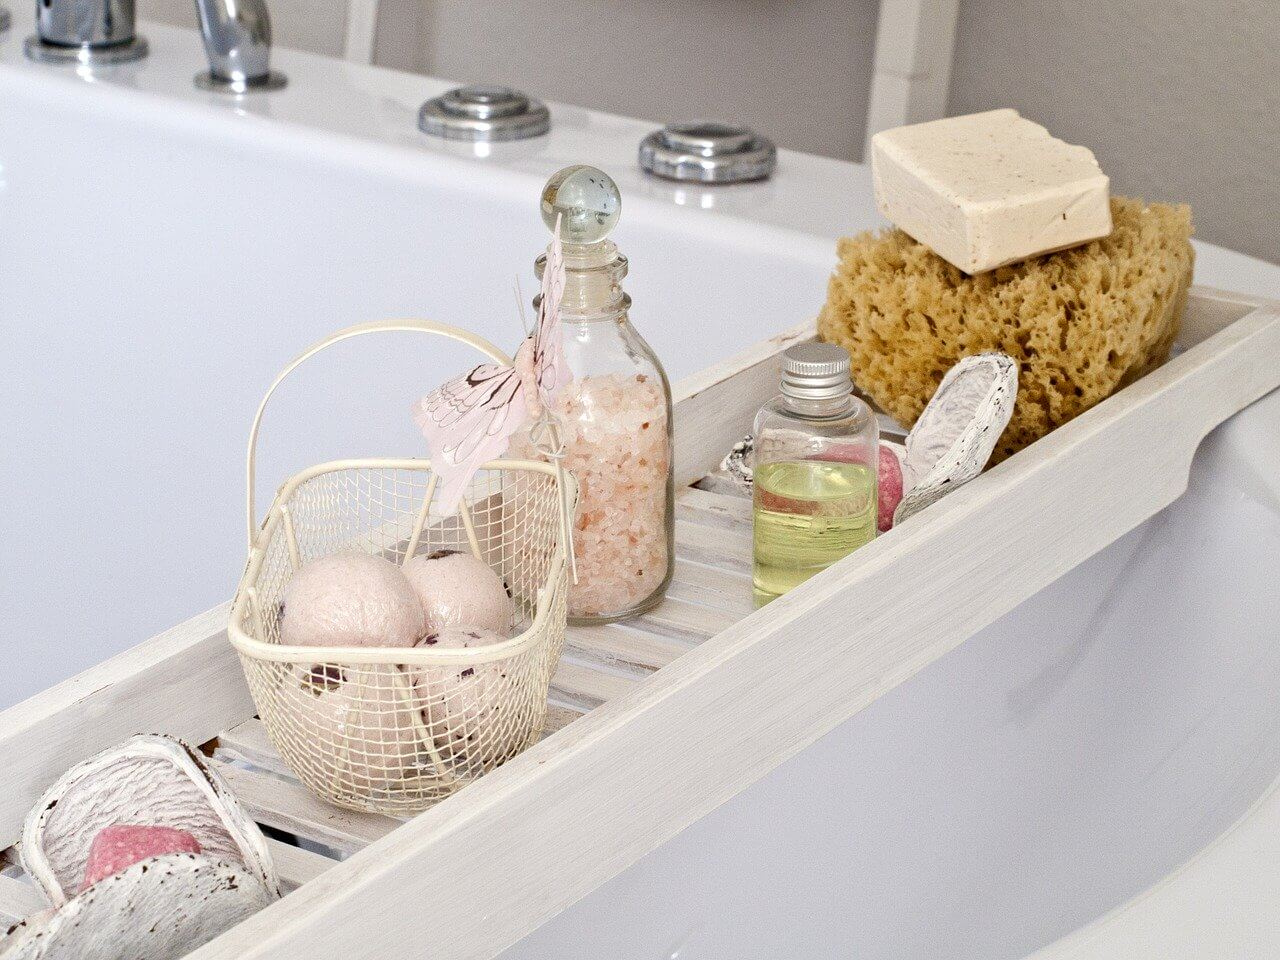 How to make a relaxing bath with household items